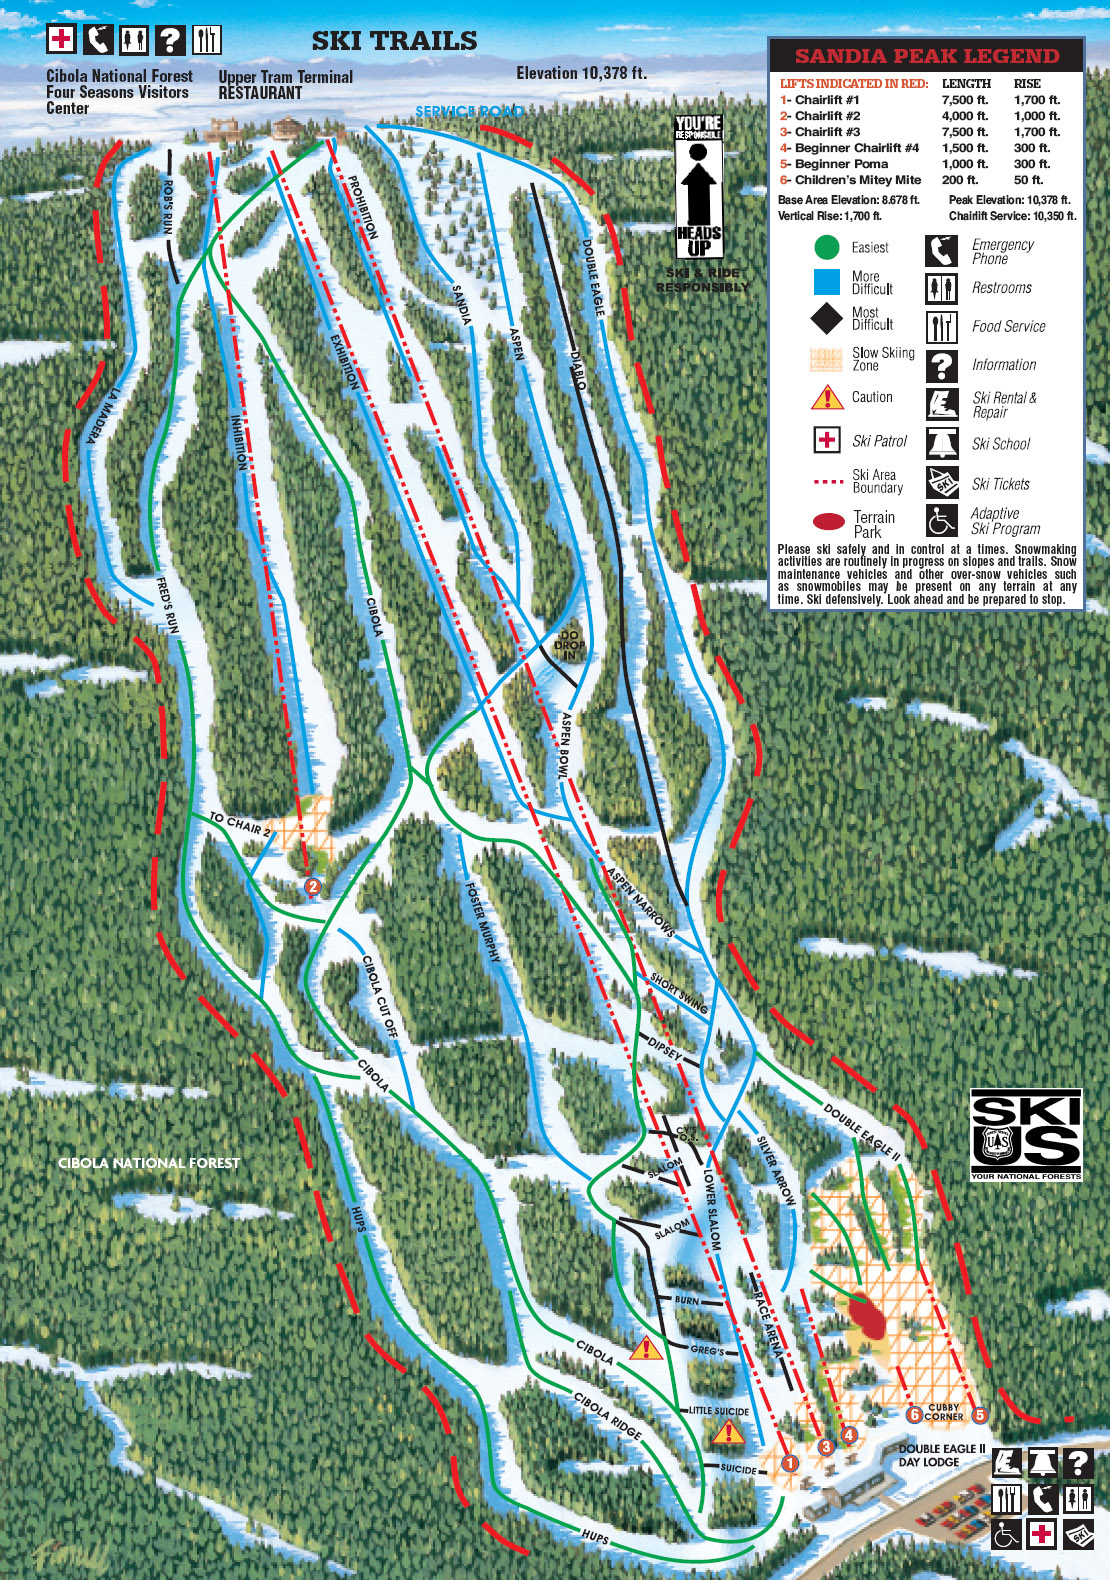 map of new mexico counties with Sandia Peak Ski Trail Map on ResearchStatisticsAndMethods furthermore Map further Sandia Peak Ski Trail Map likewise Maps in addition Germany.